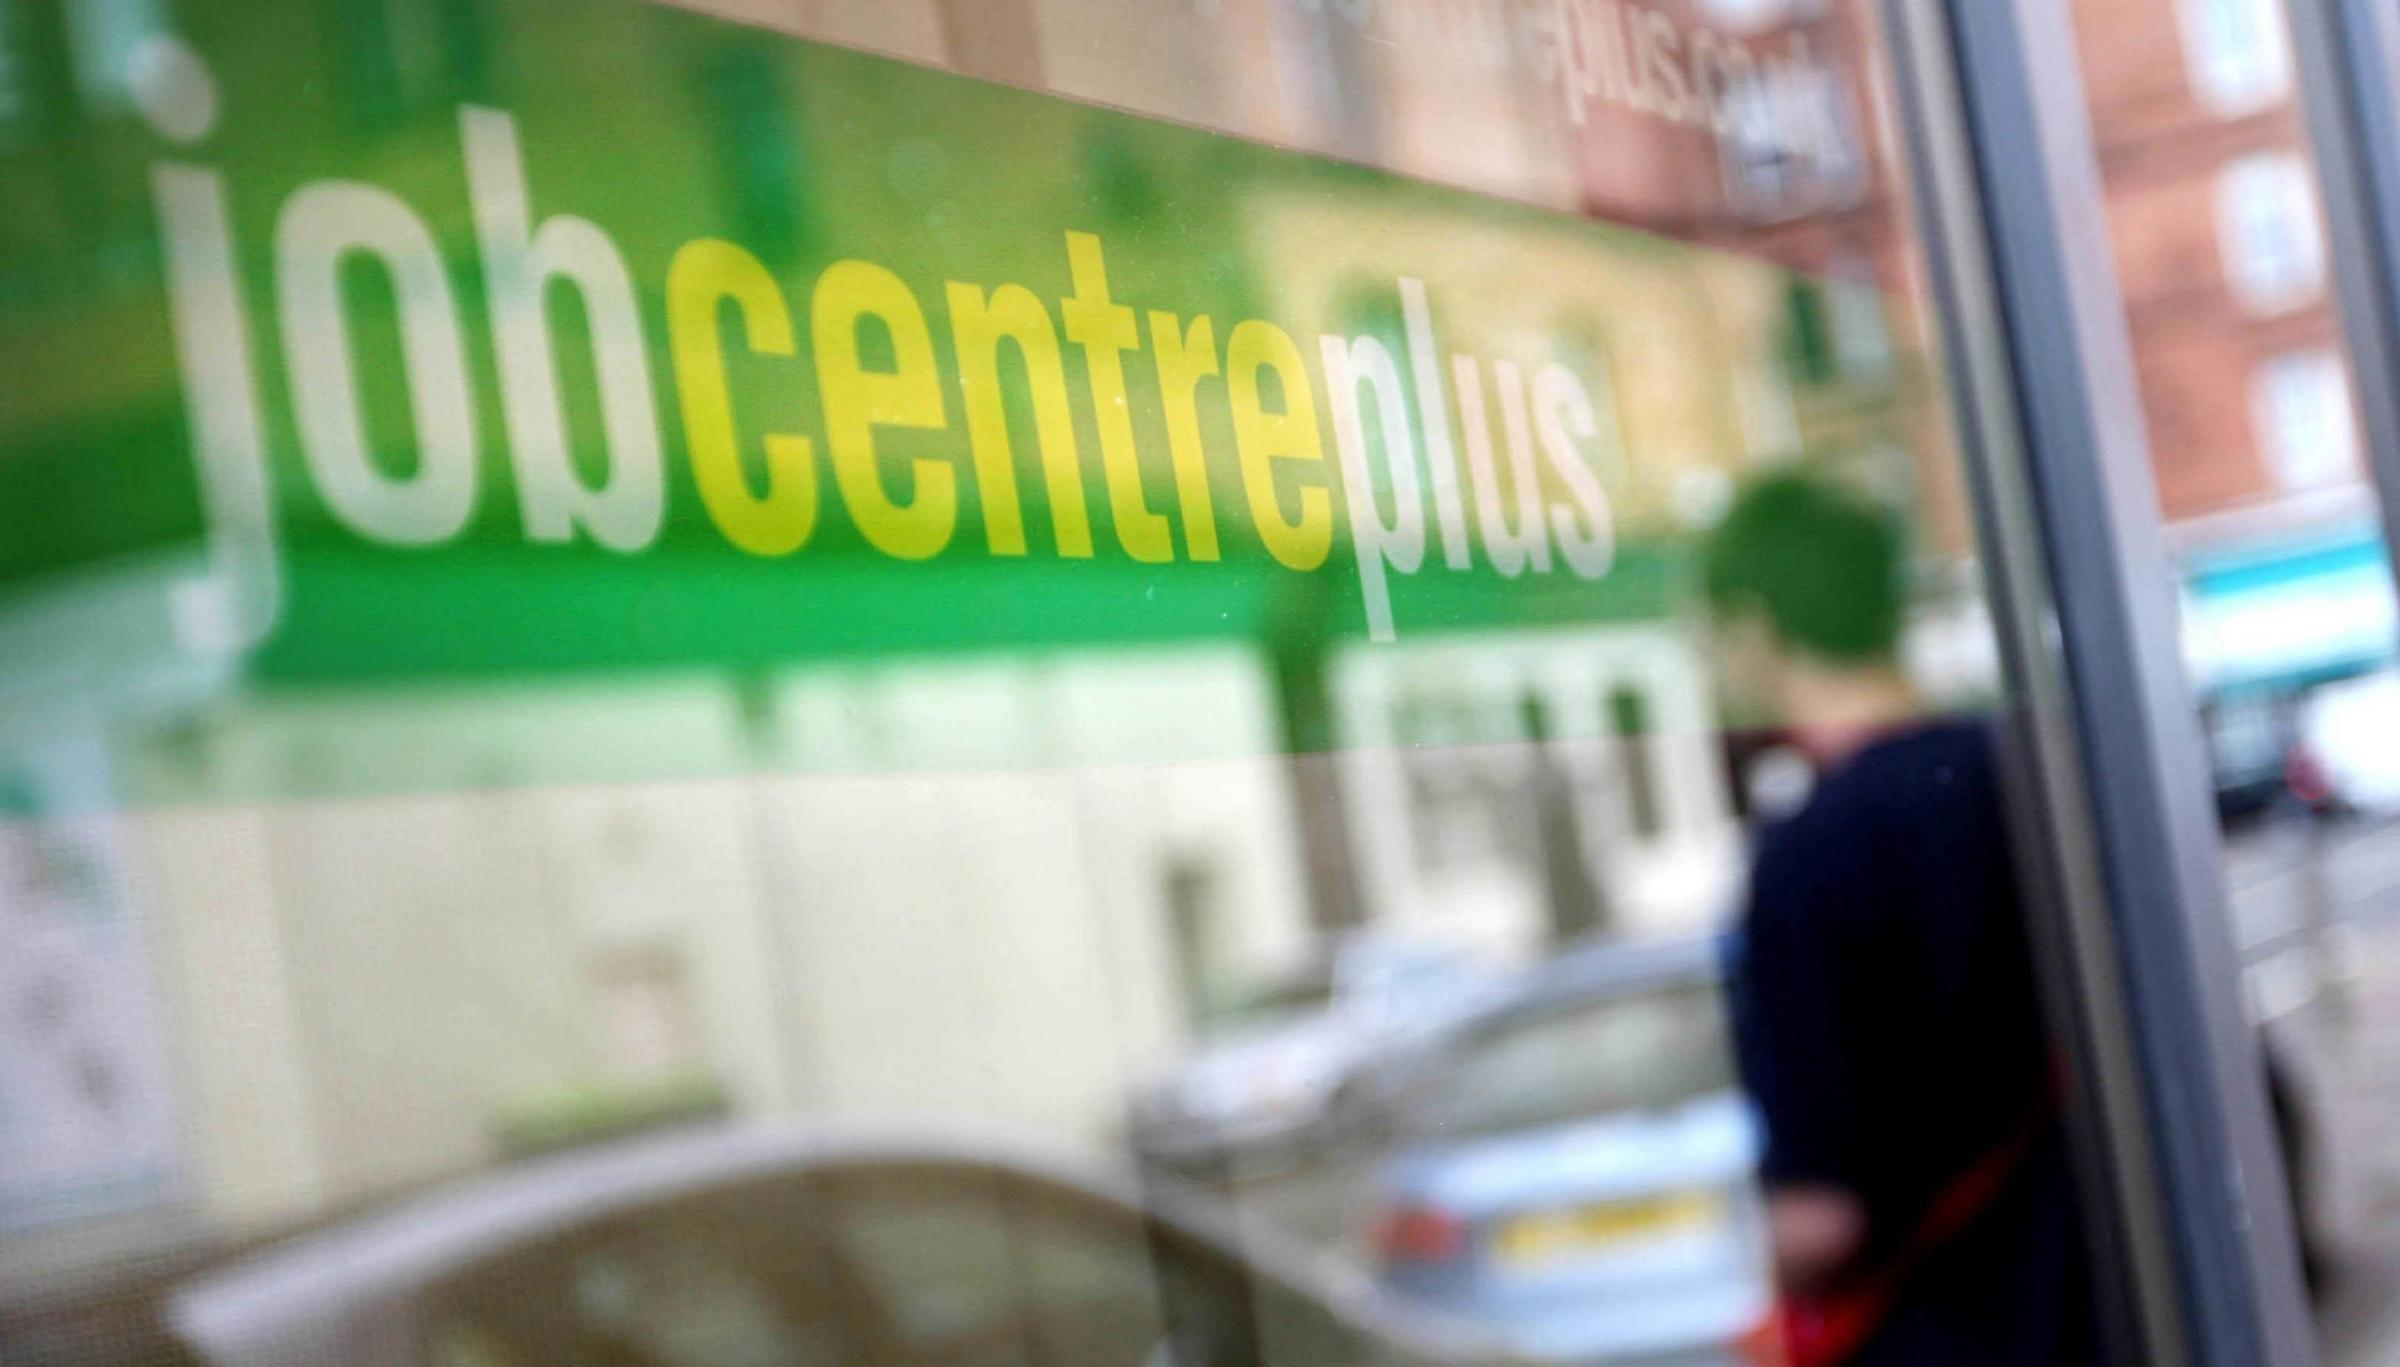 UK unemployment falls to lowest level since 2005